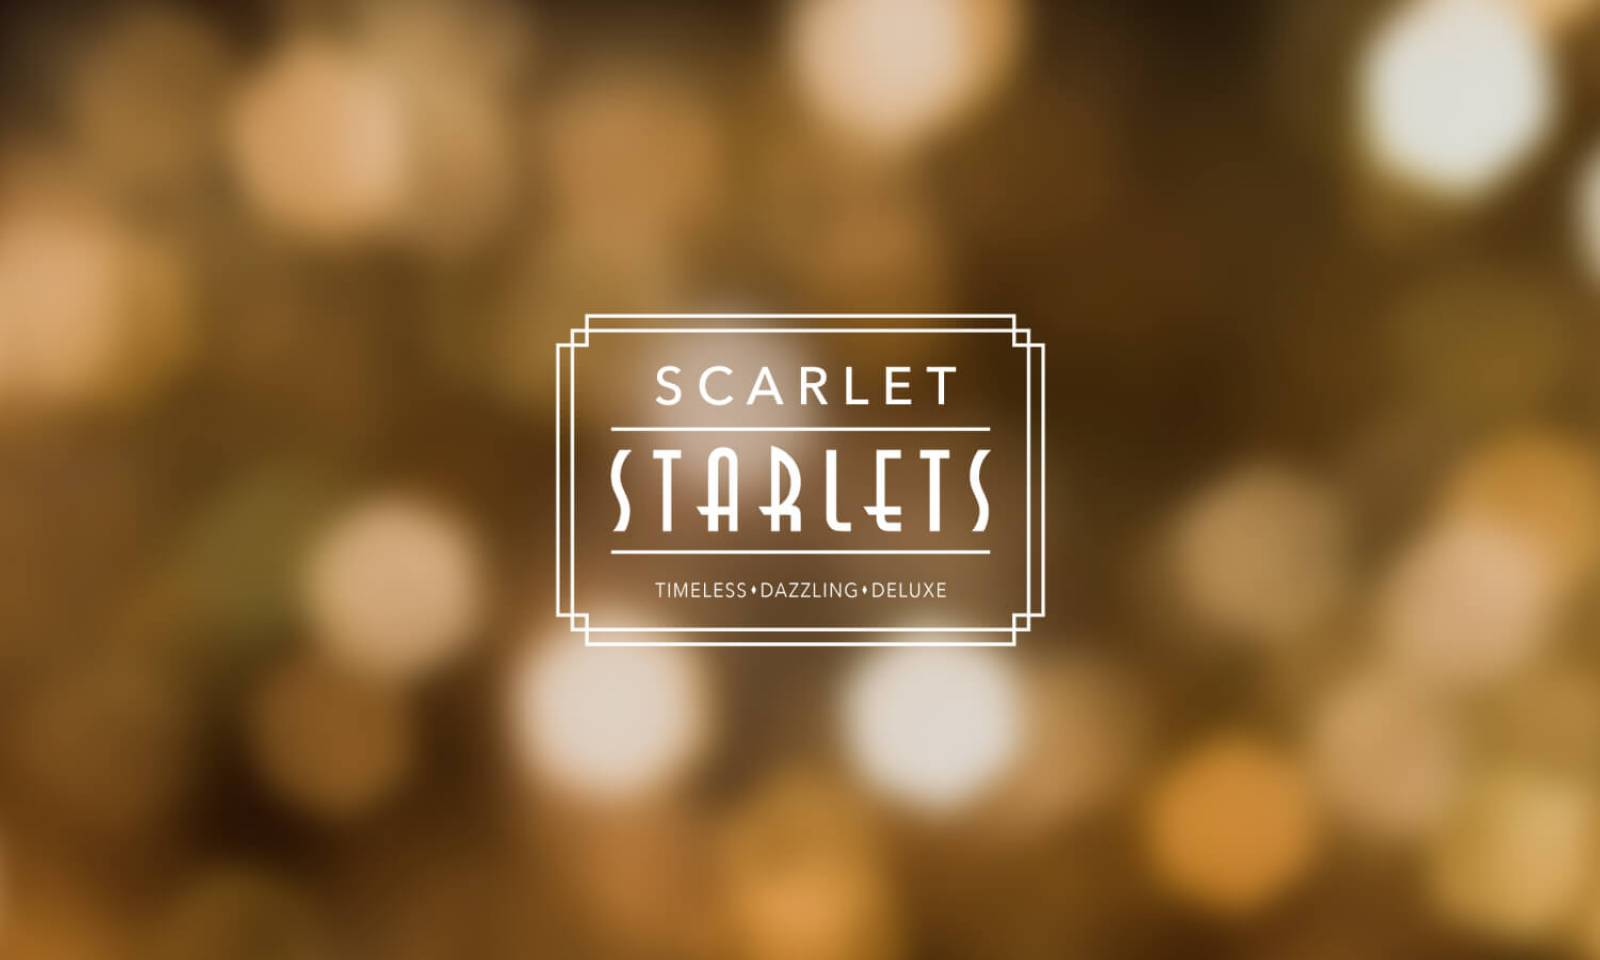 Scarlet-starlets-4-logo-corporate-identity-agency-graphic-design-canterbury.jpg